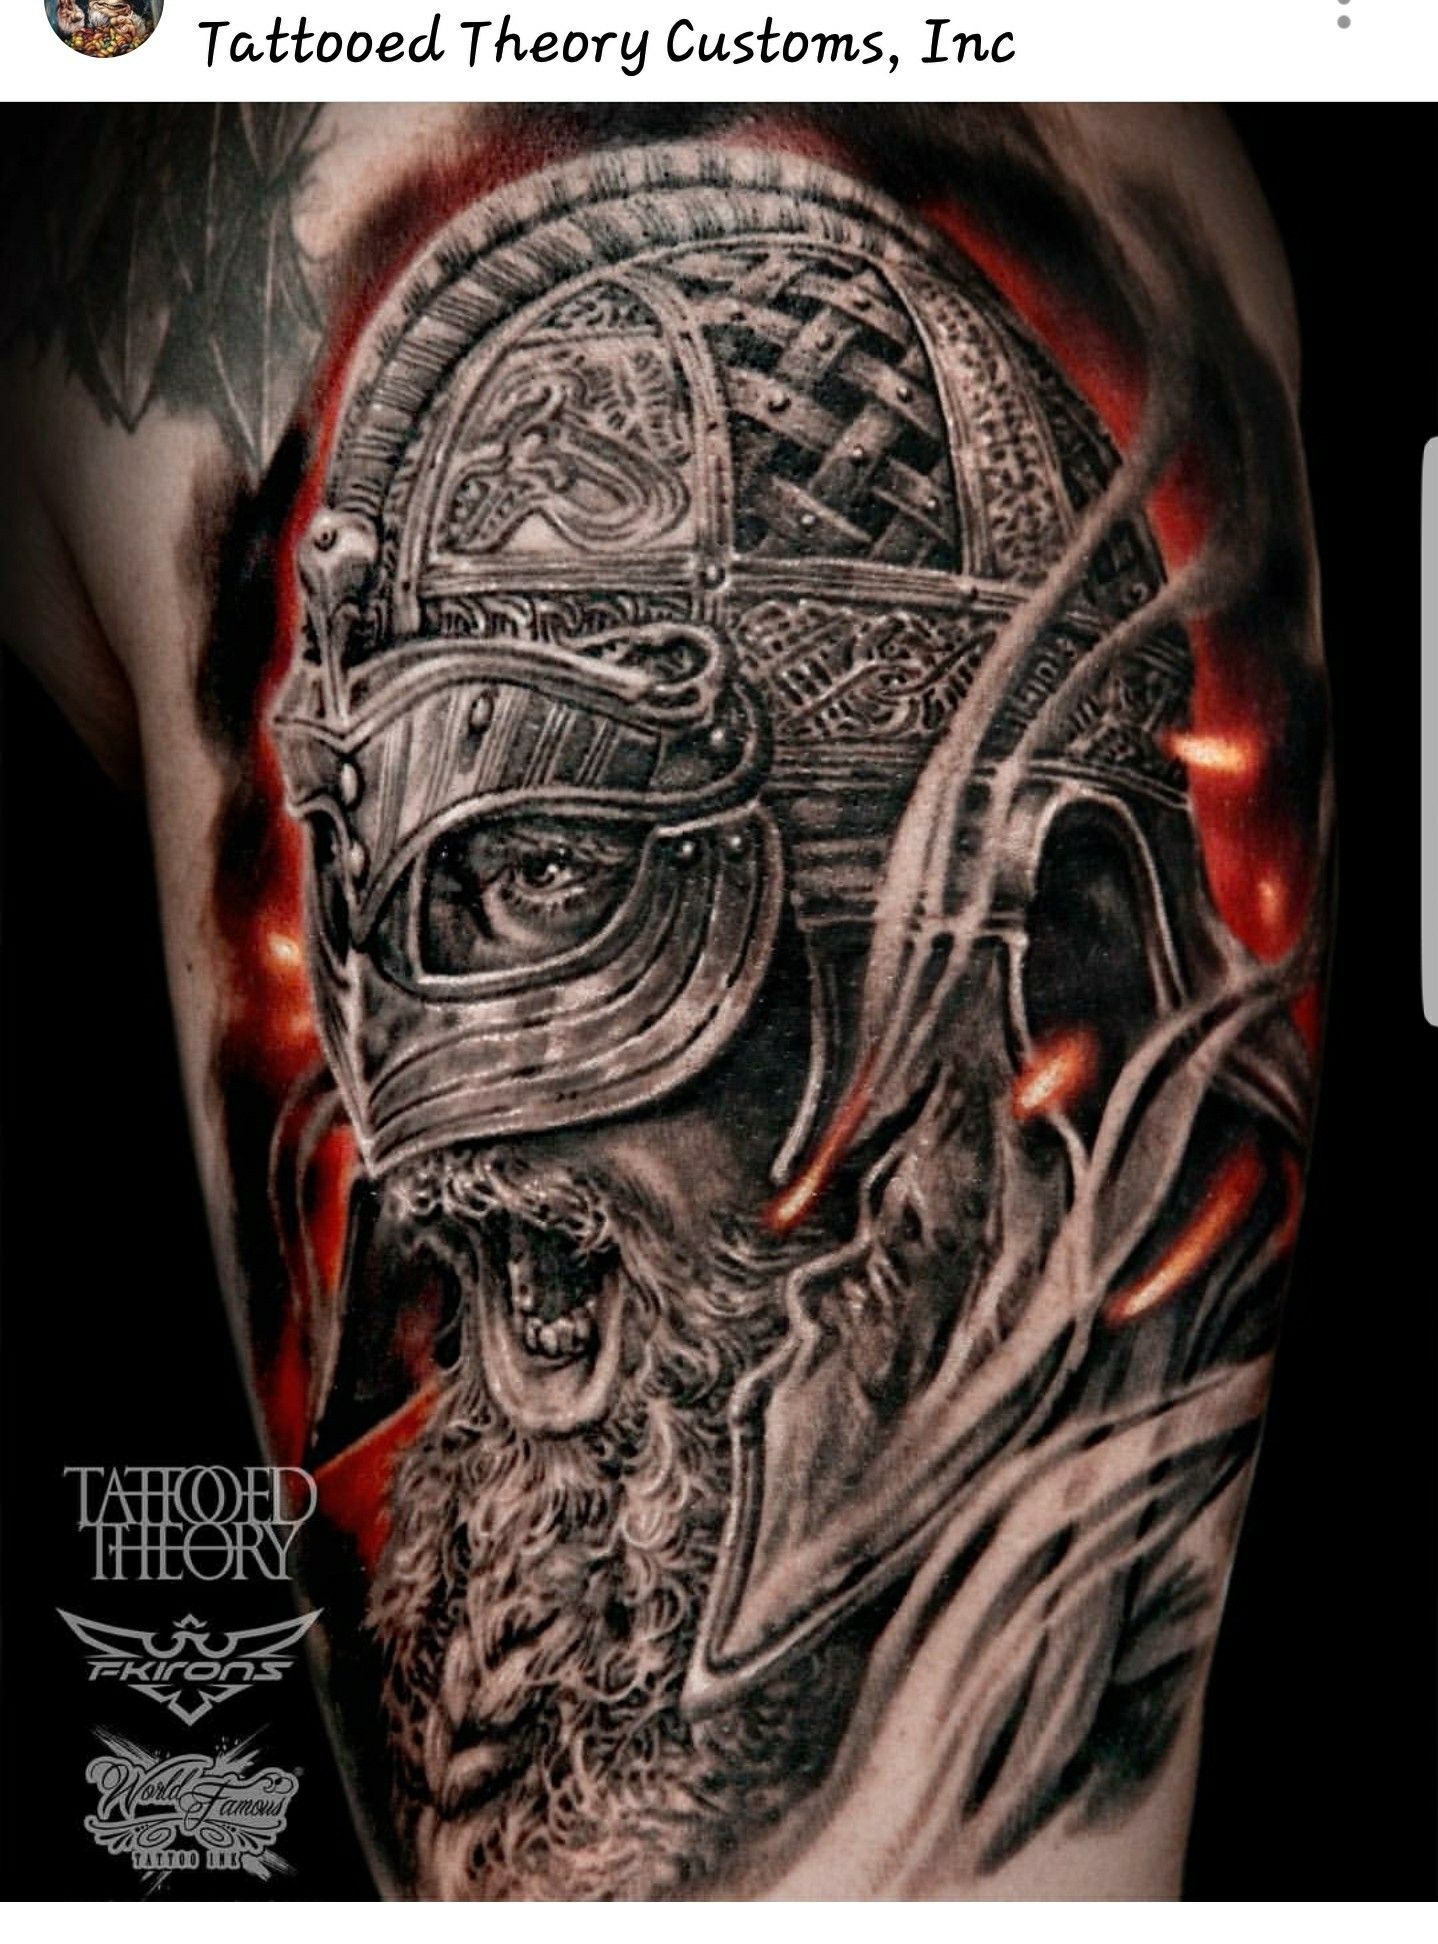 Norse/Viking warrior tattoo by @javi_tattooedtheory ...